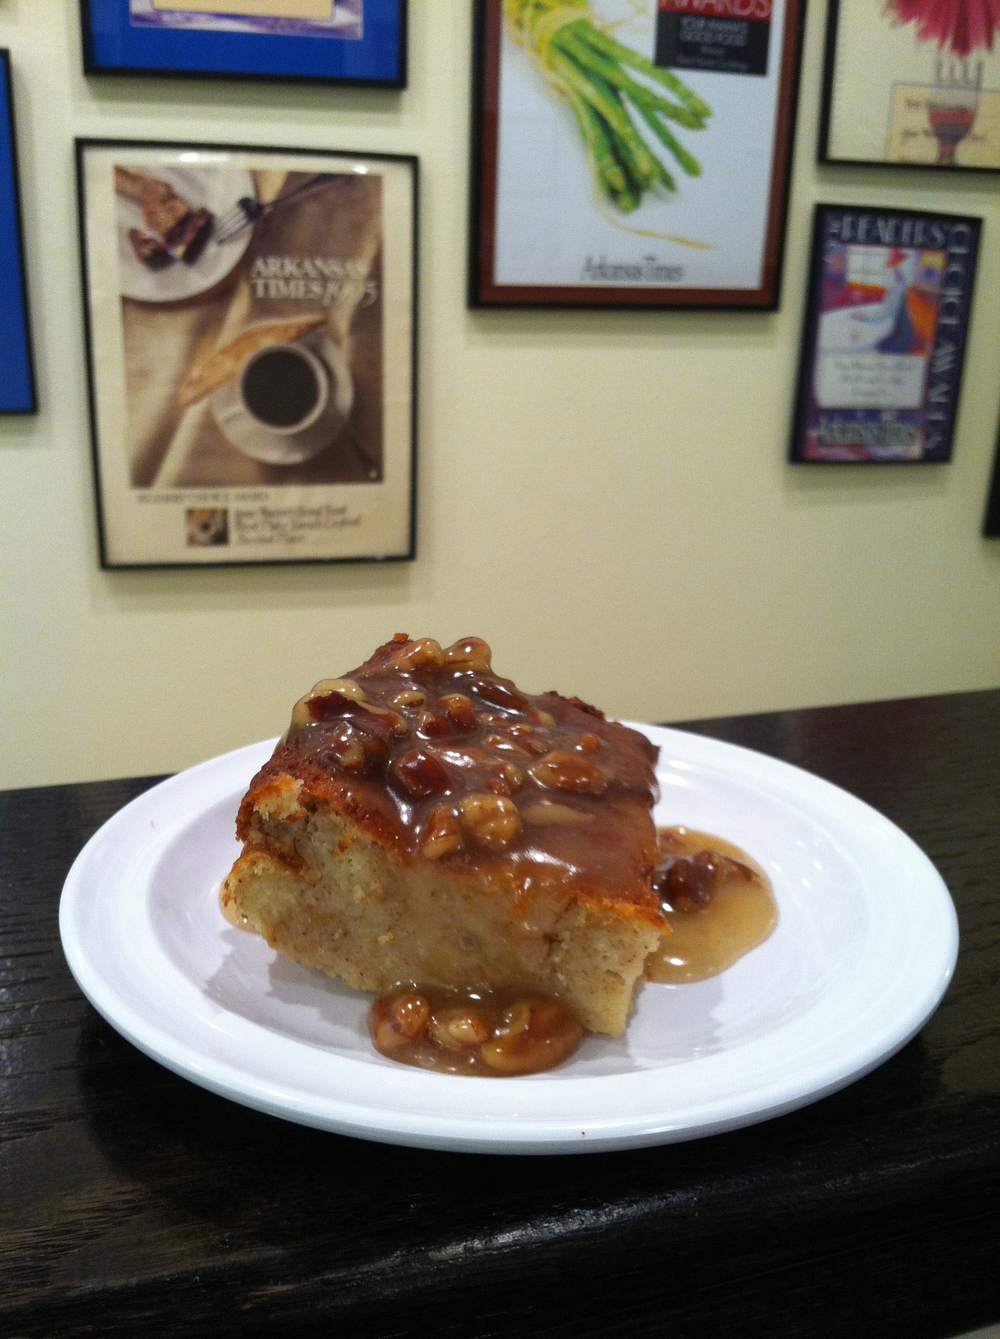 Mama's bread pudding with praline sauce